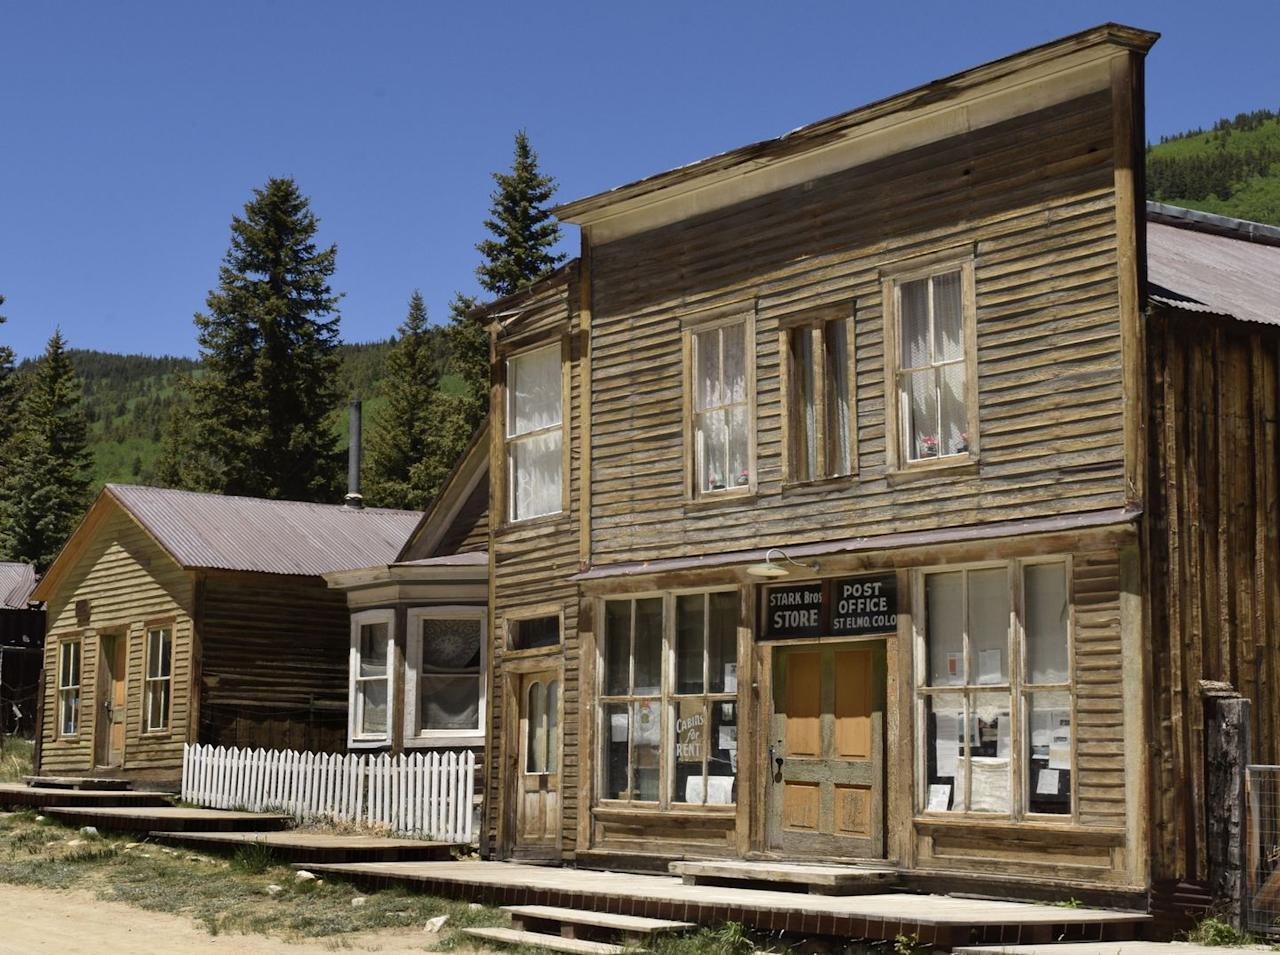 "<p>If you're looking for paranormal activity, this boasts the most of any ghost town in the state of Colorado. The gold and silver mining town was founded in 1880 and was abandoned when the mining industry began to decline in 1922. </p><p><a rel=""nofollow"" href=""https://www.tripadvisor.com/Hotel_Review-g33562-d123375-Reviews-Mount_Princeton_Hot_Springs_Resort-Nathrop_Colorado.html"">BOOK NOW</a> <em><strong>Mount Princeton Hot Springs Resort</strong></em></p>"